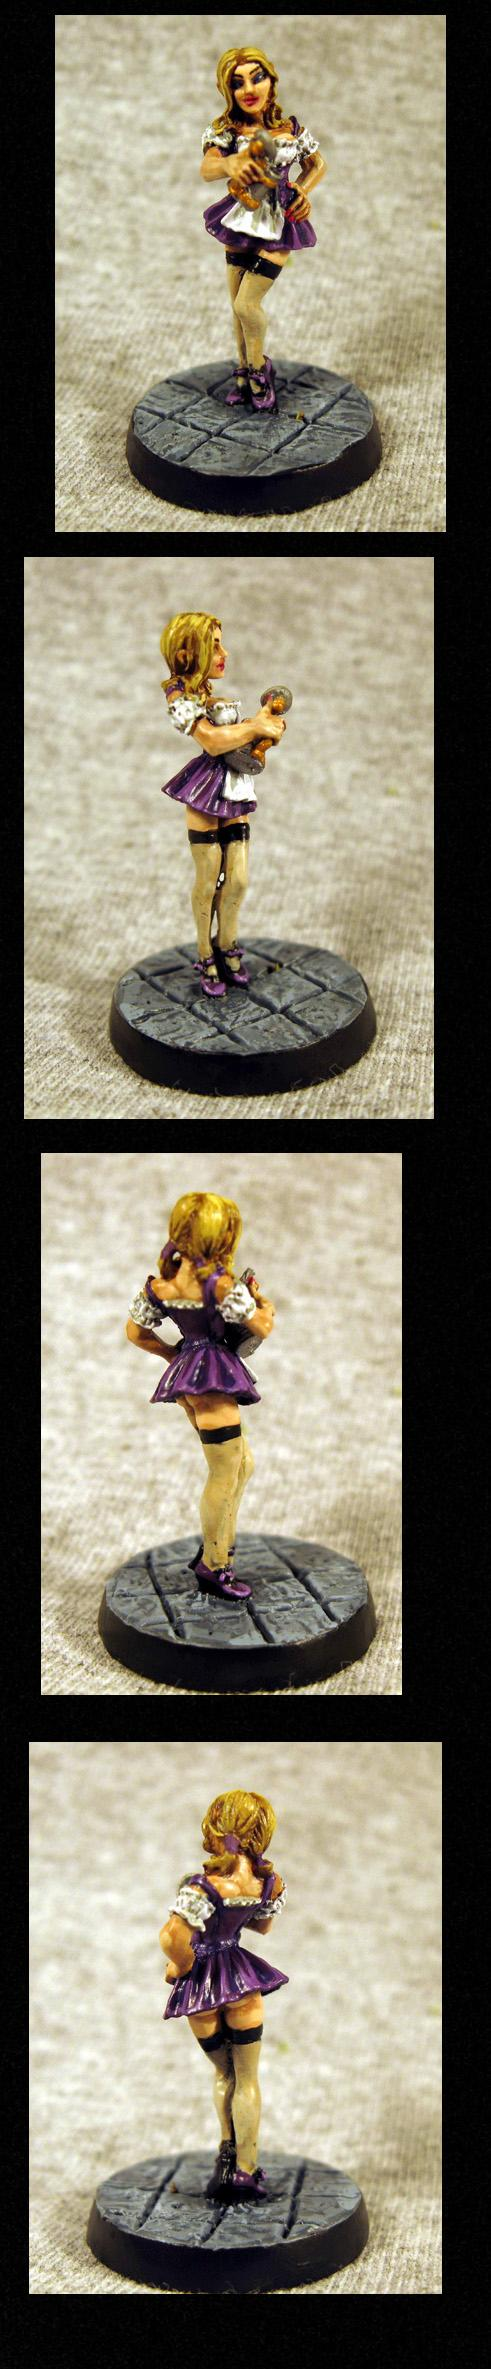 Female, Girl, Pathfinders, Pro Painted, Reaper, Reaper Miniatures, Reaper Minis, Rpg, Sexy, Warhammer Fantasy